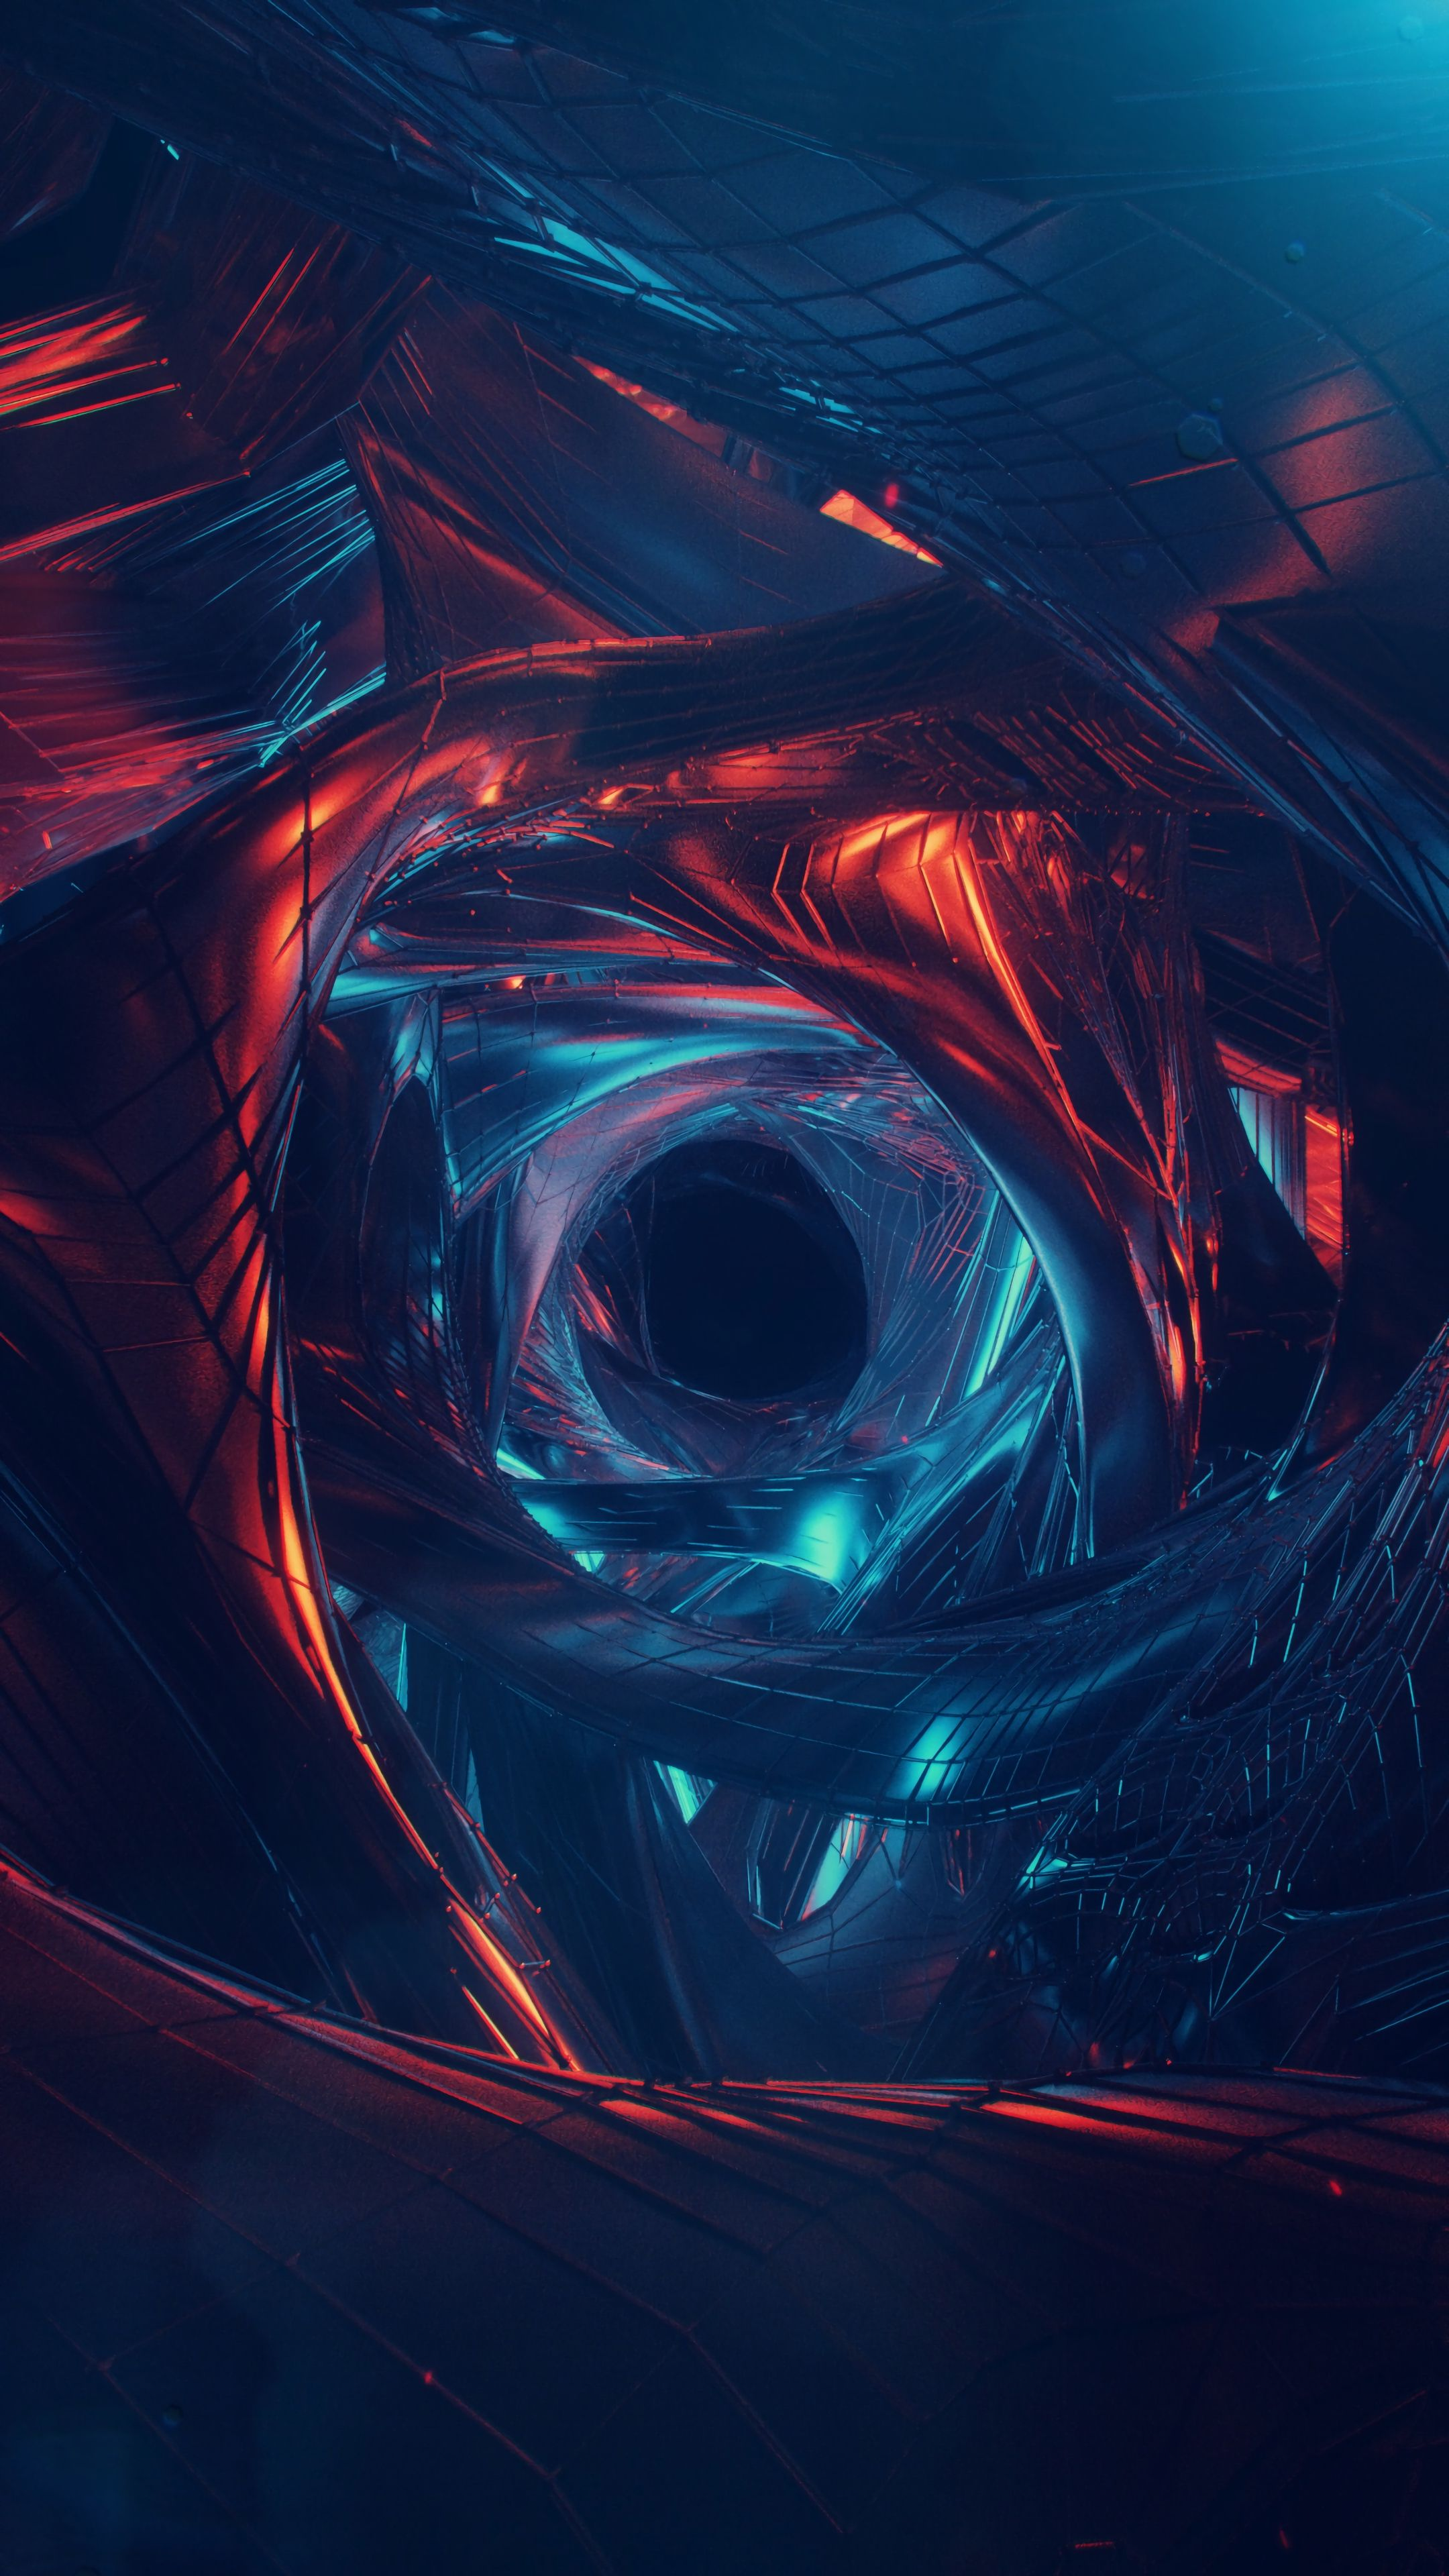 #Abstract #wormhole #art #visualization #wallpapers hd 4k ...